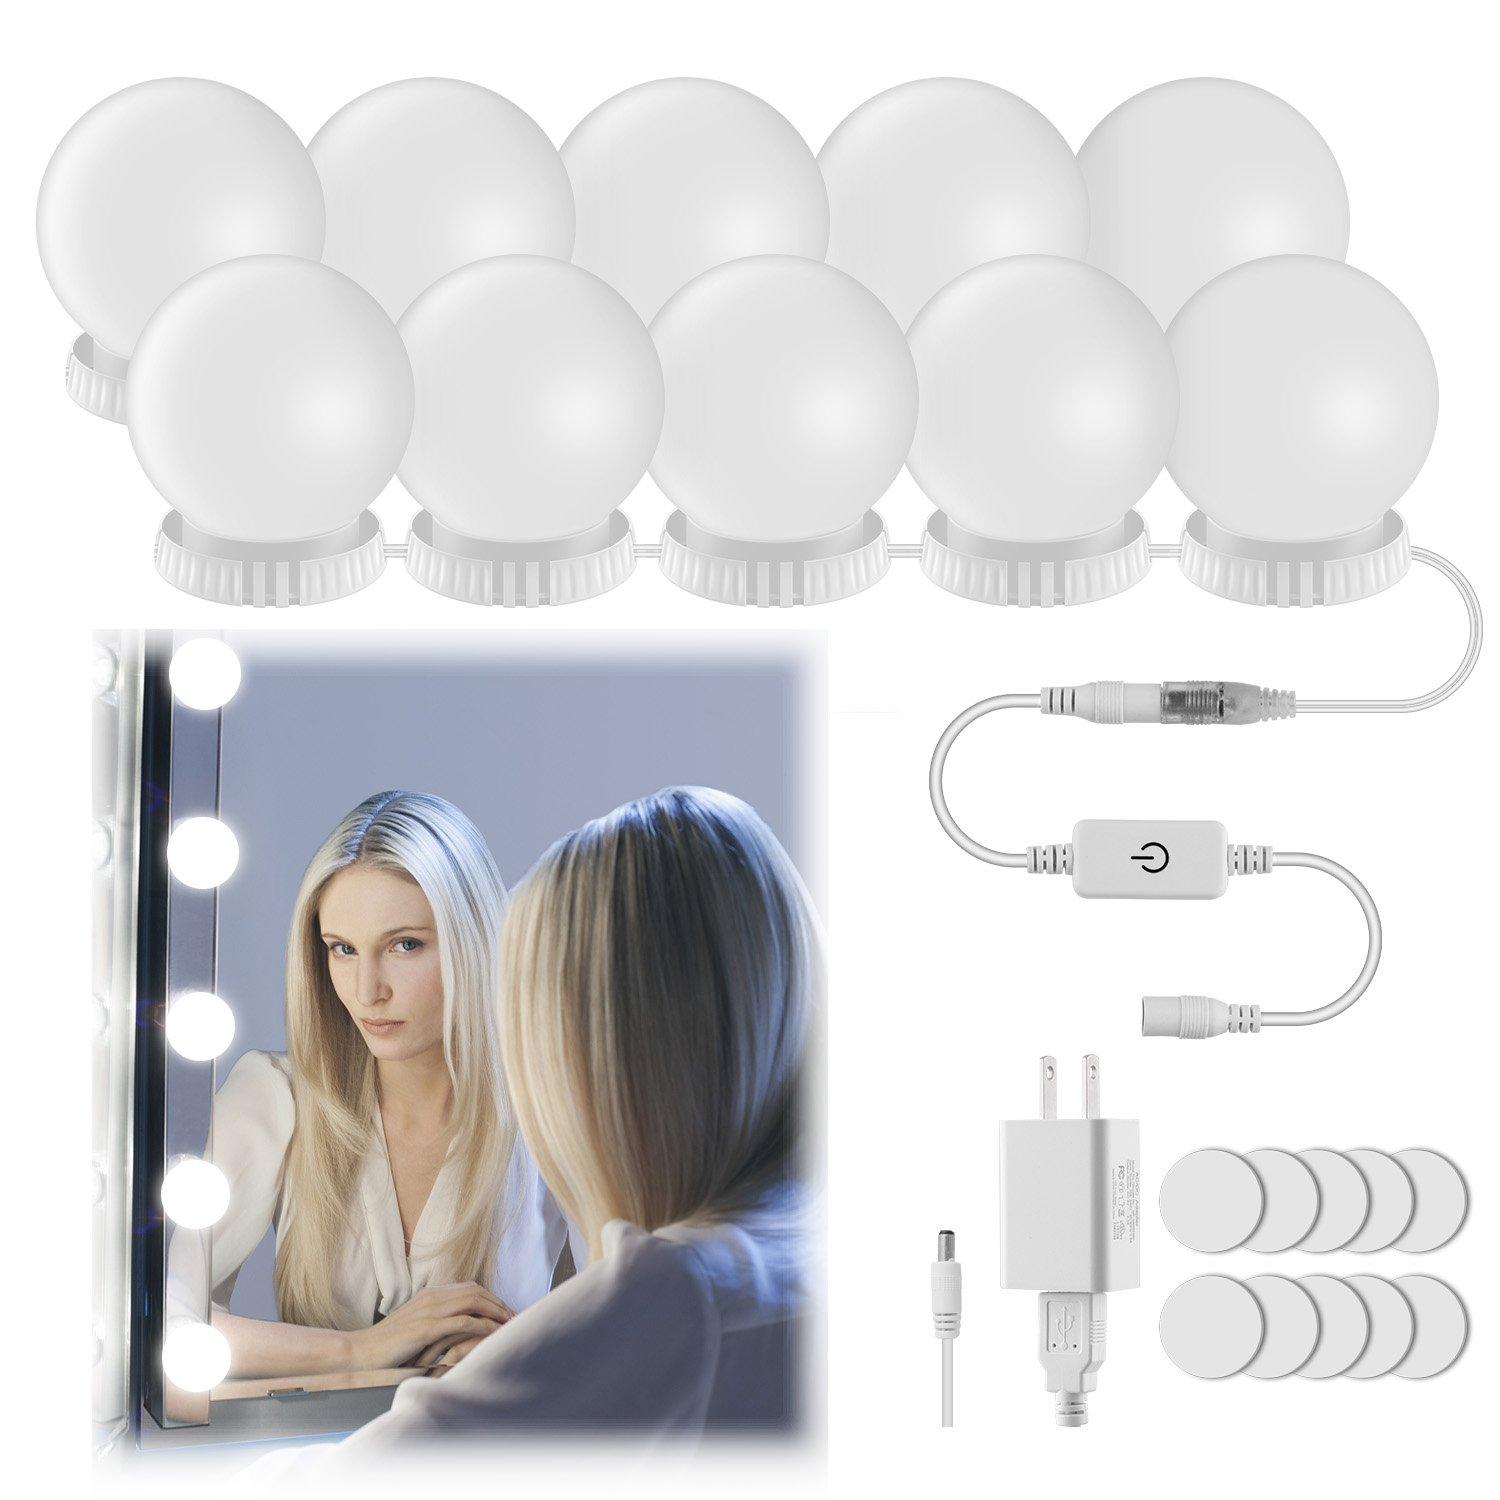 Vanity Mirror Lights,Elitlife Hollywood Style LED Makeup Mirror Lights Kit with 7000K Dimmable Bulbs and Touch Dimmer for Makeup Vanity Table Set in Dressing Room (Mirror Not Include)